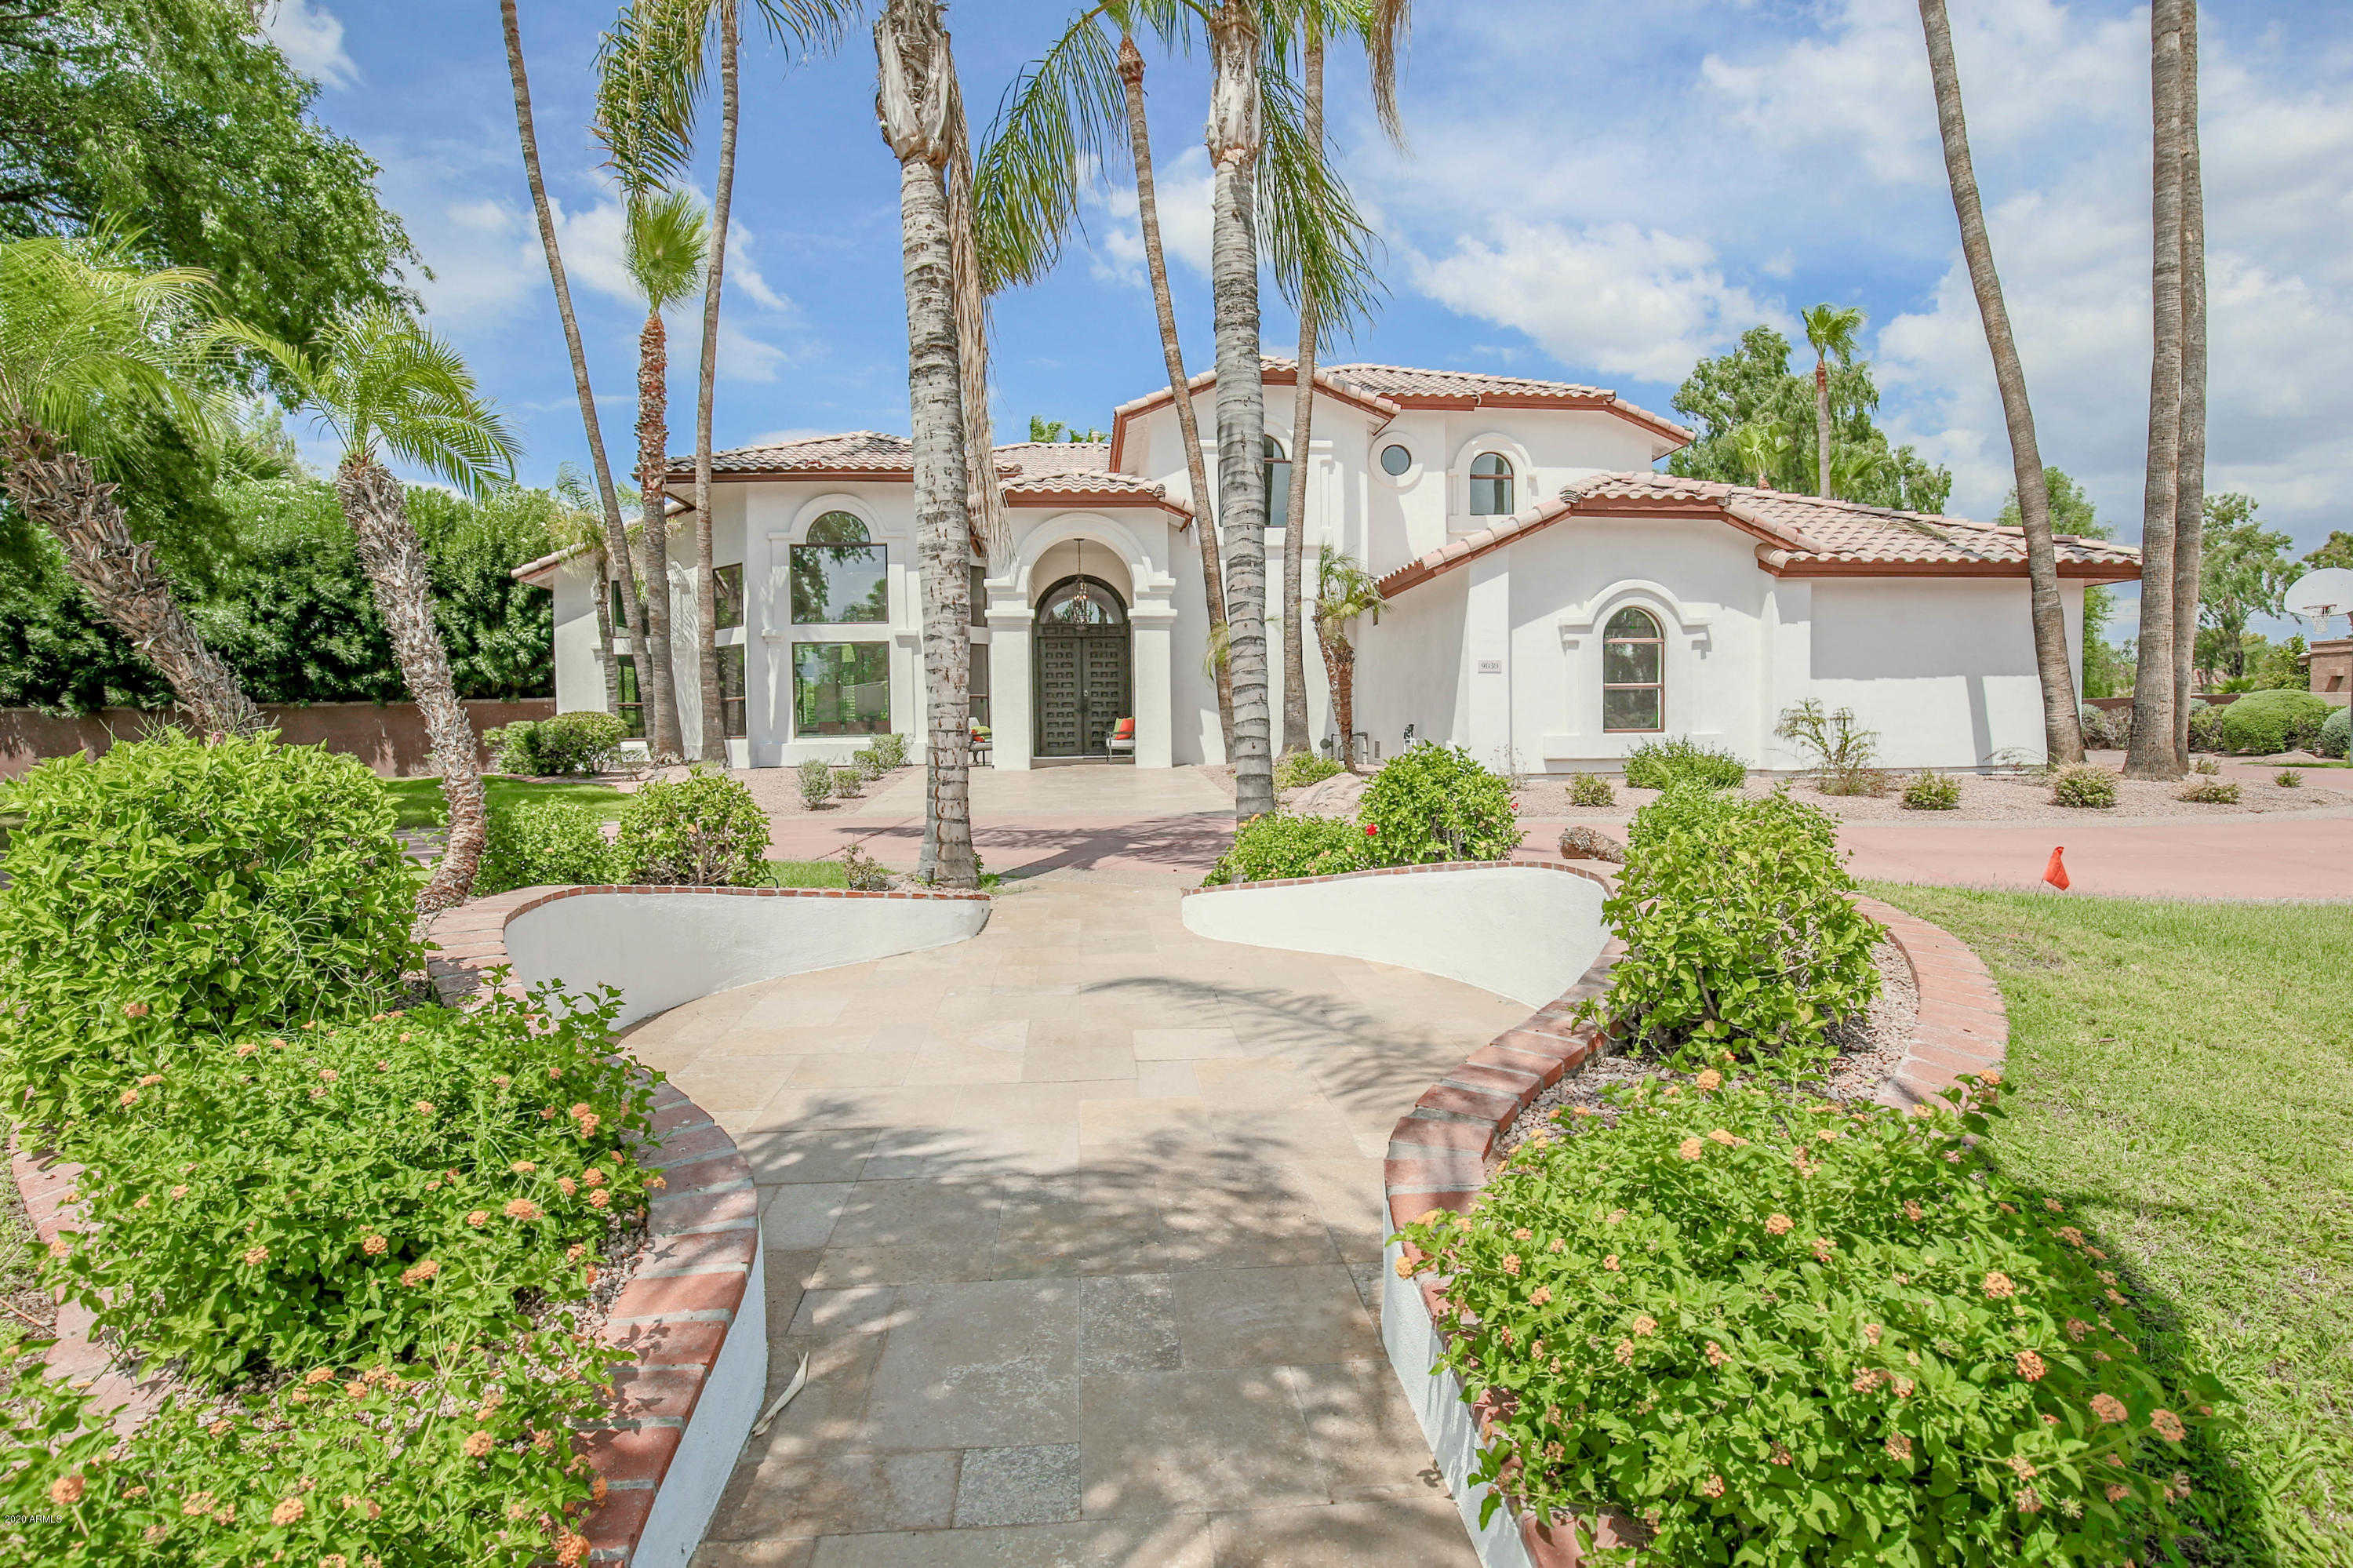 $2,496,240 - 6Br/7Ba - Home for Sale in Foothills Estates, Paradise Valley